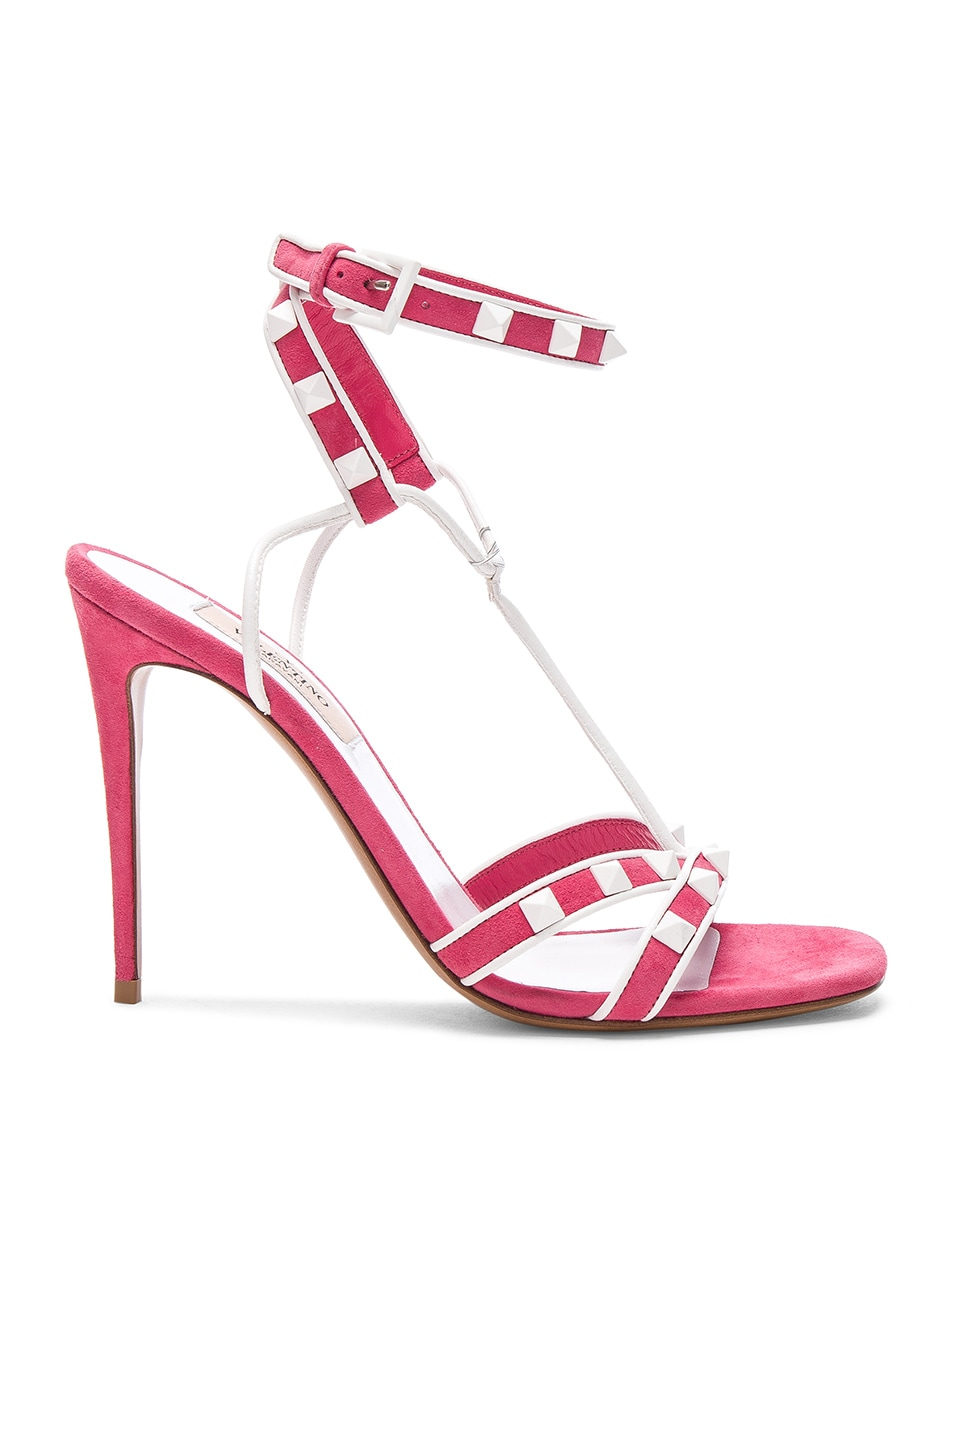 732f6c93b Image 1 of Valentino Free Rockstud Ankle Strap Sandals in Shadow Pink &  White